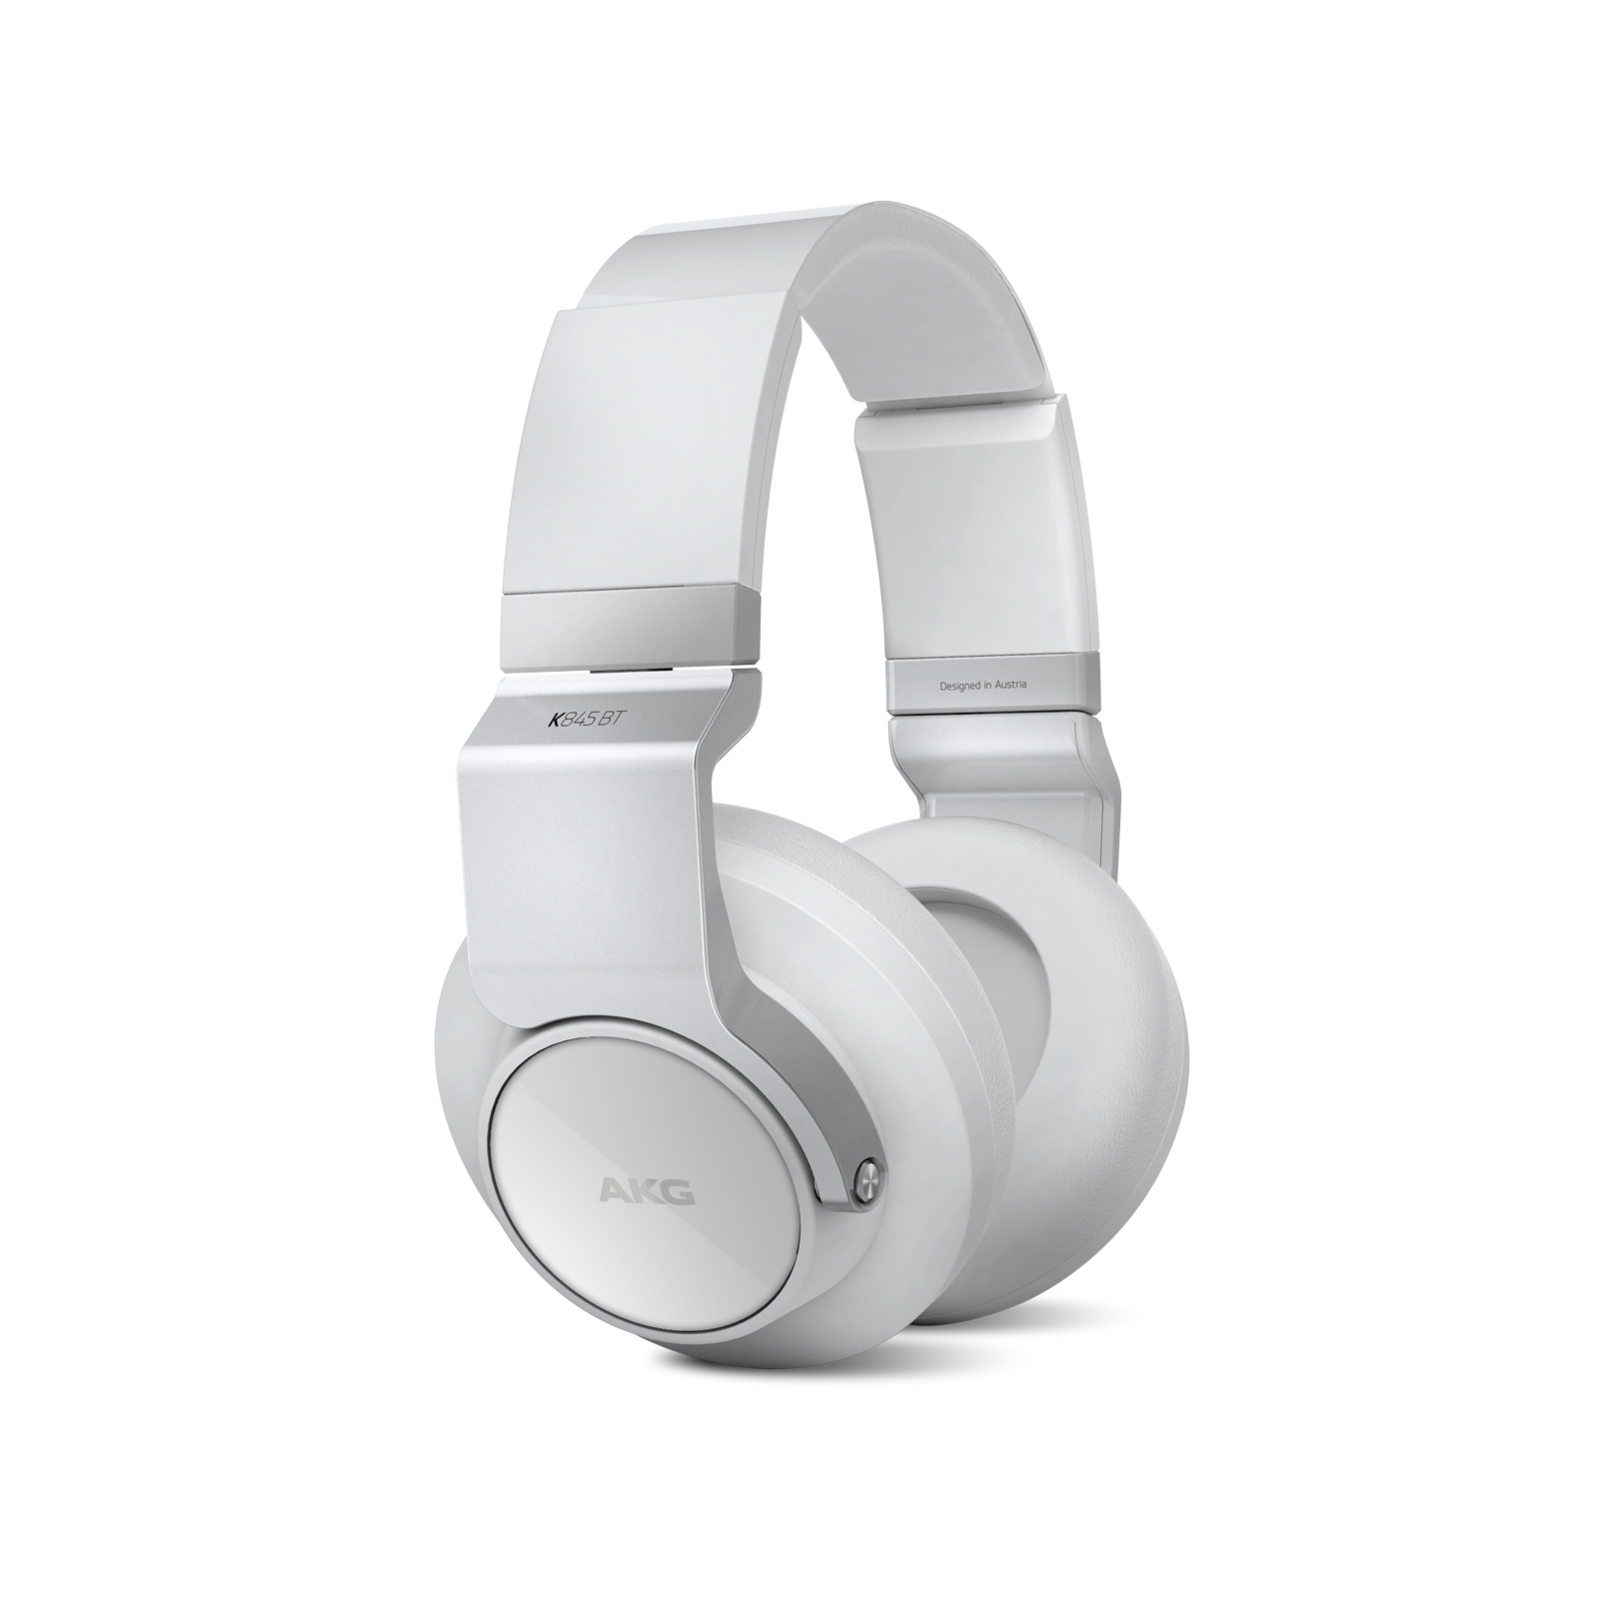 K 845BT - White - High performance over-ear wireless headphones with Bluetooth - Hero